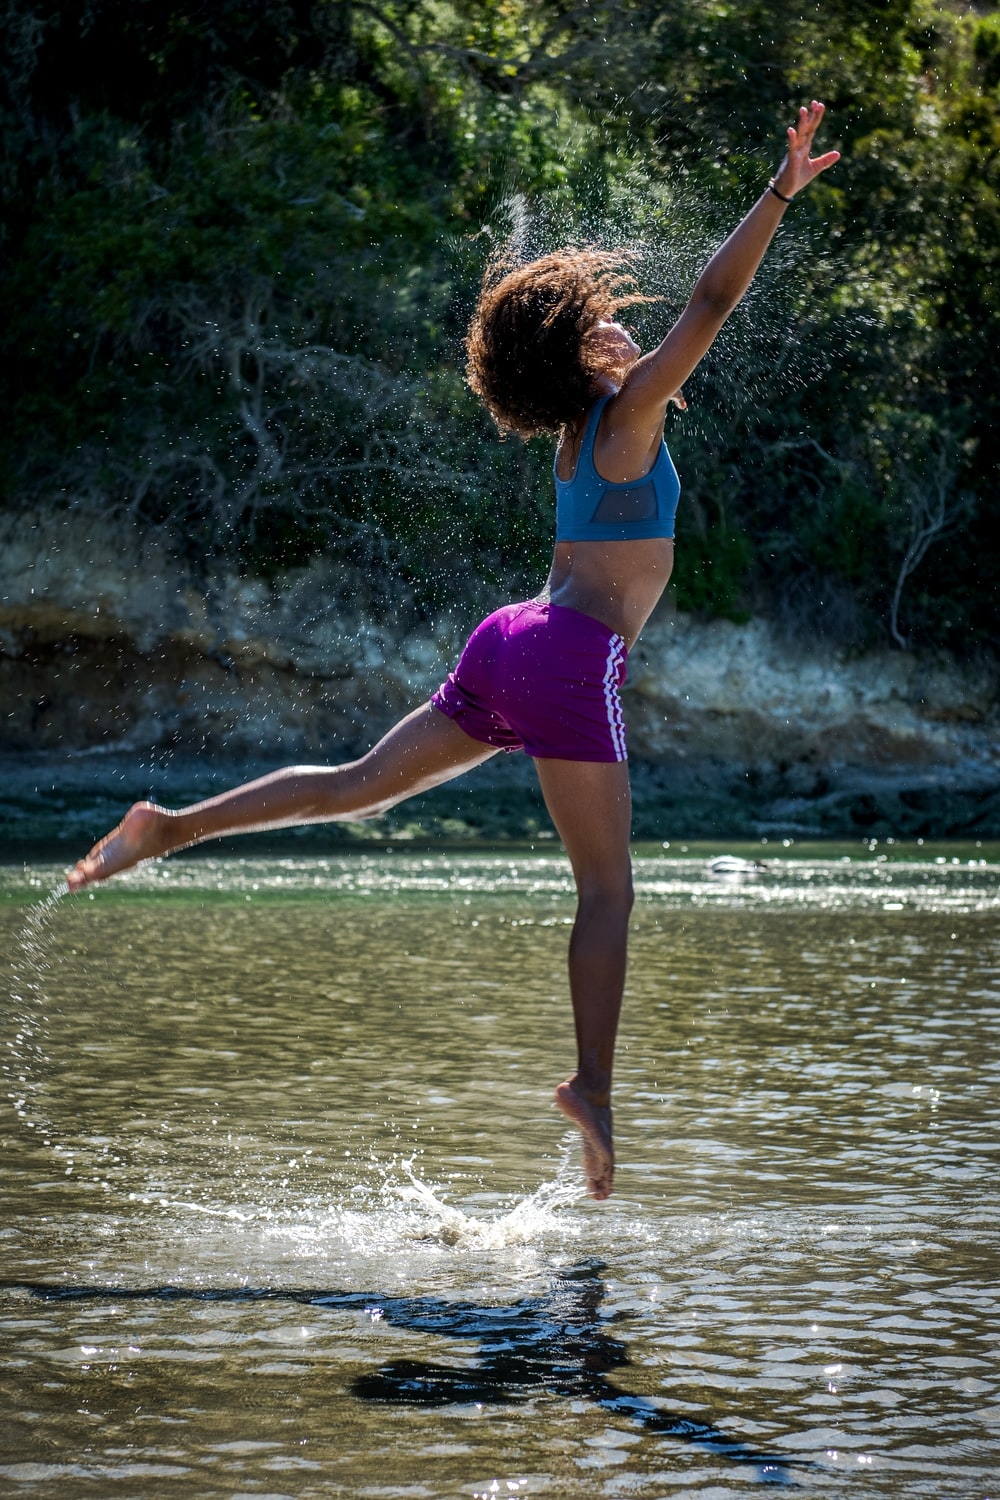 woman jumping on body of water near trees during daytime